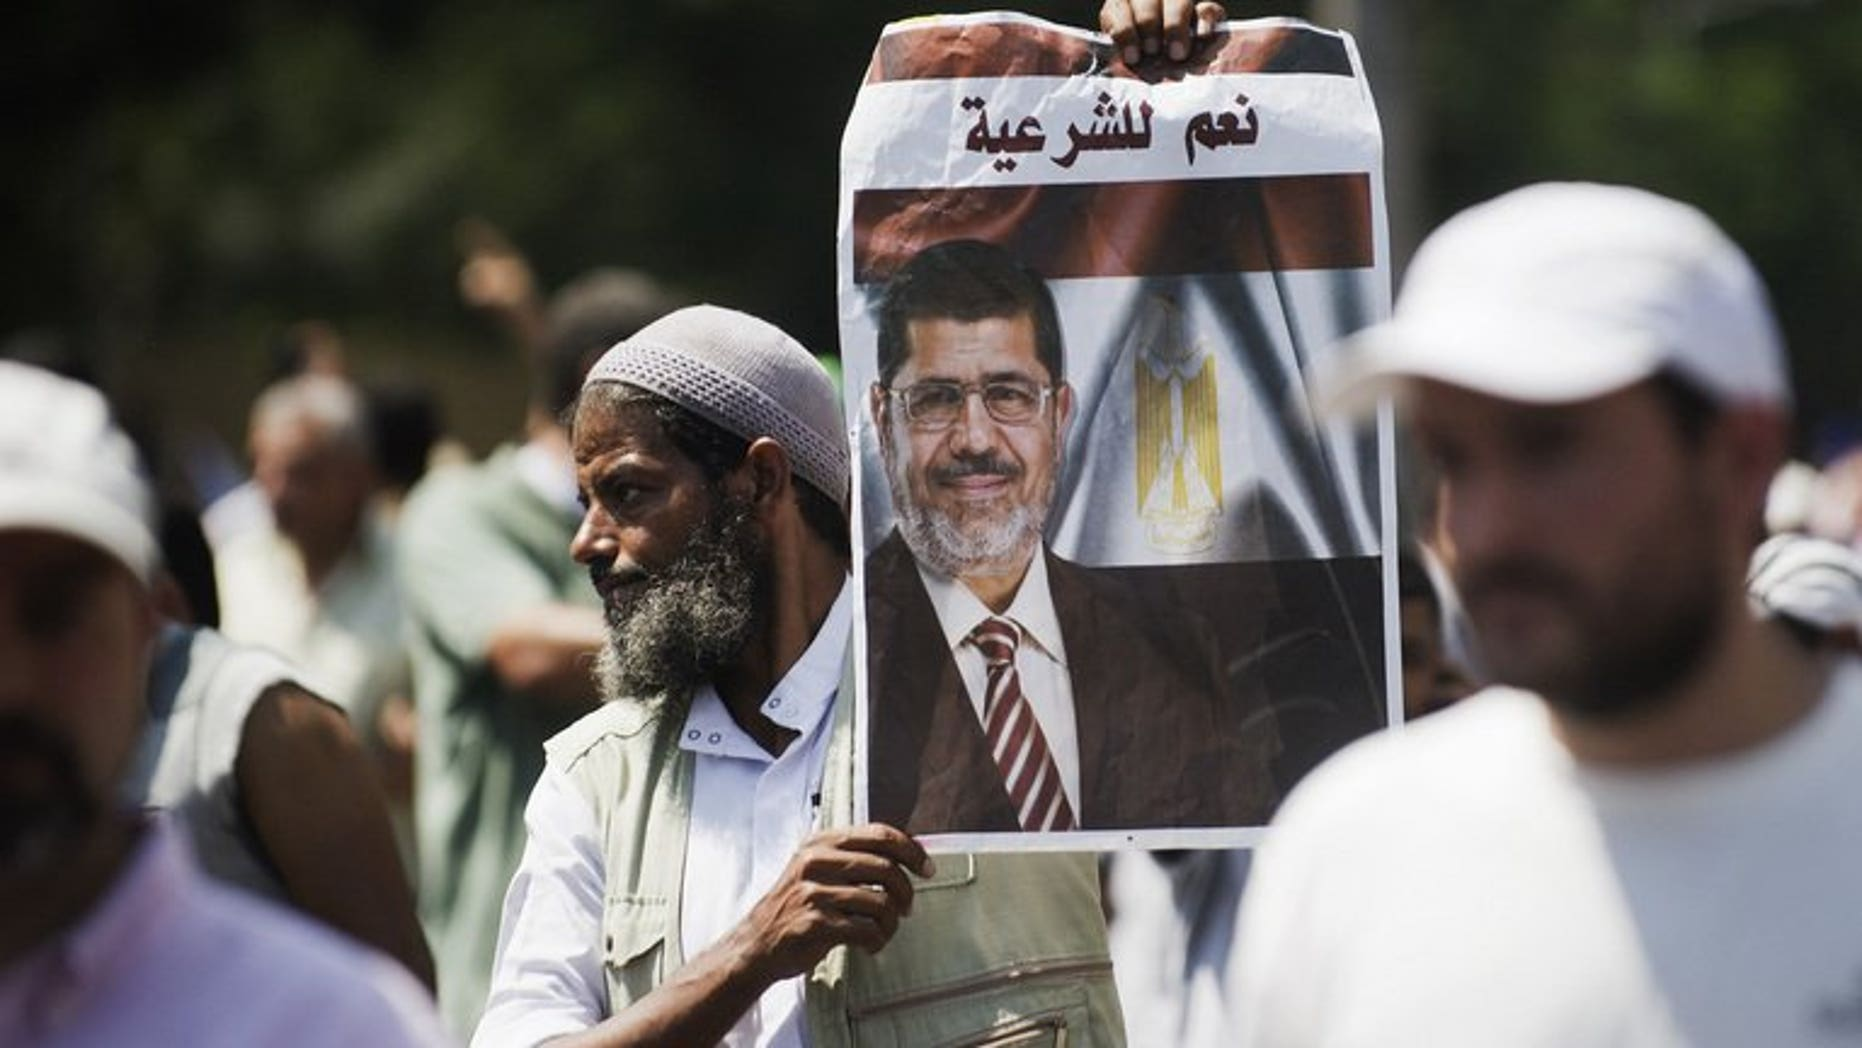 """A supporter of the Muslim Brotherhood and ousted Egyptian president Mohamed Morsi holds his portrait with text on it reading in Arabic: """"Yes to Sharia"""" as they march near Cairo University on July 5, 2013. Gunfire erupted outside the Cairo headquarters of the Republican Guard on Friday where supporters of ousted Egyptian president Mohamed Morsi had massed vowing to defend him."""